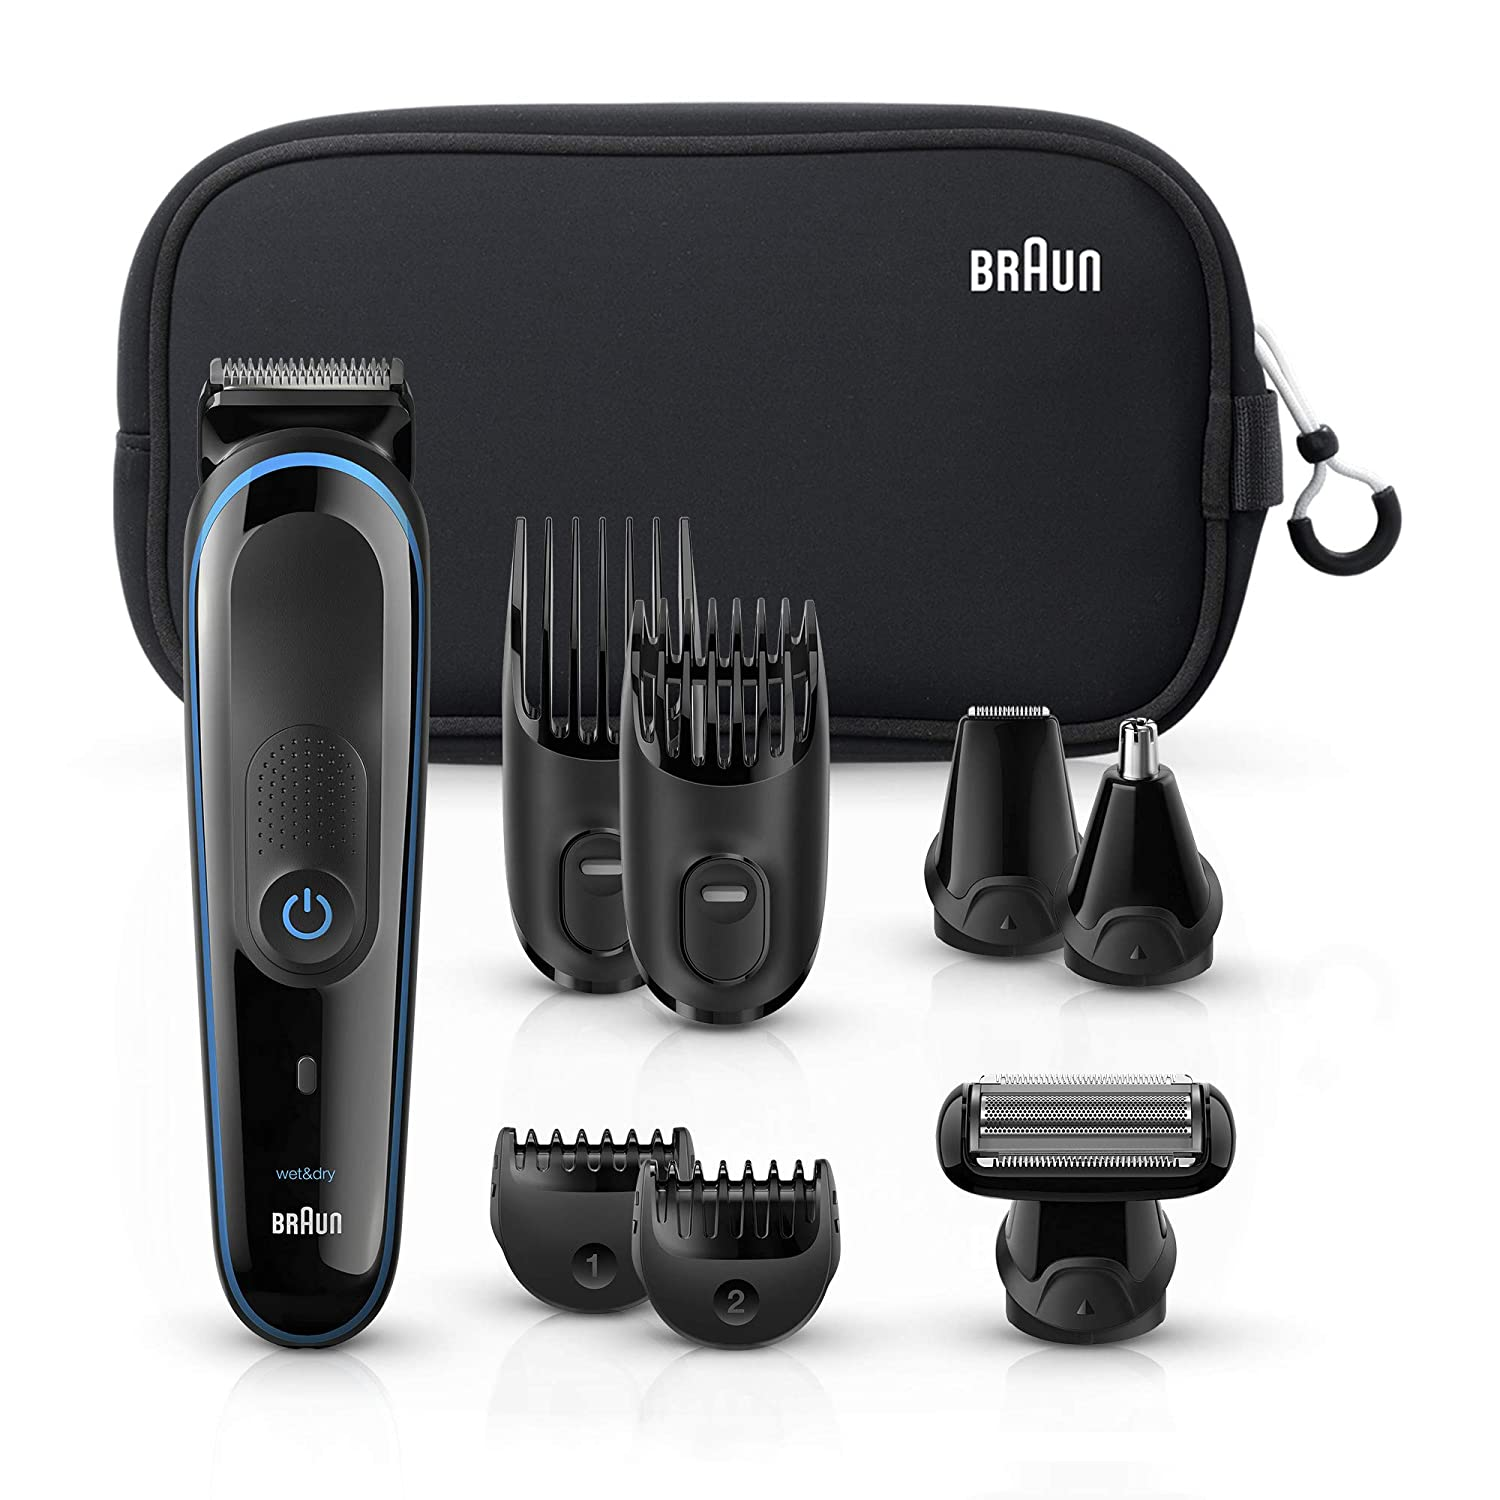 Braun MGK3980 9-In-1 Rechargable Beard Trimmer